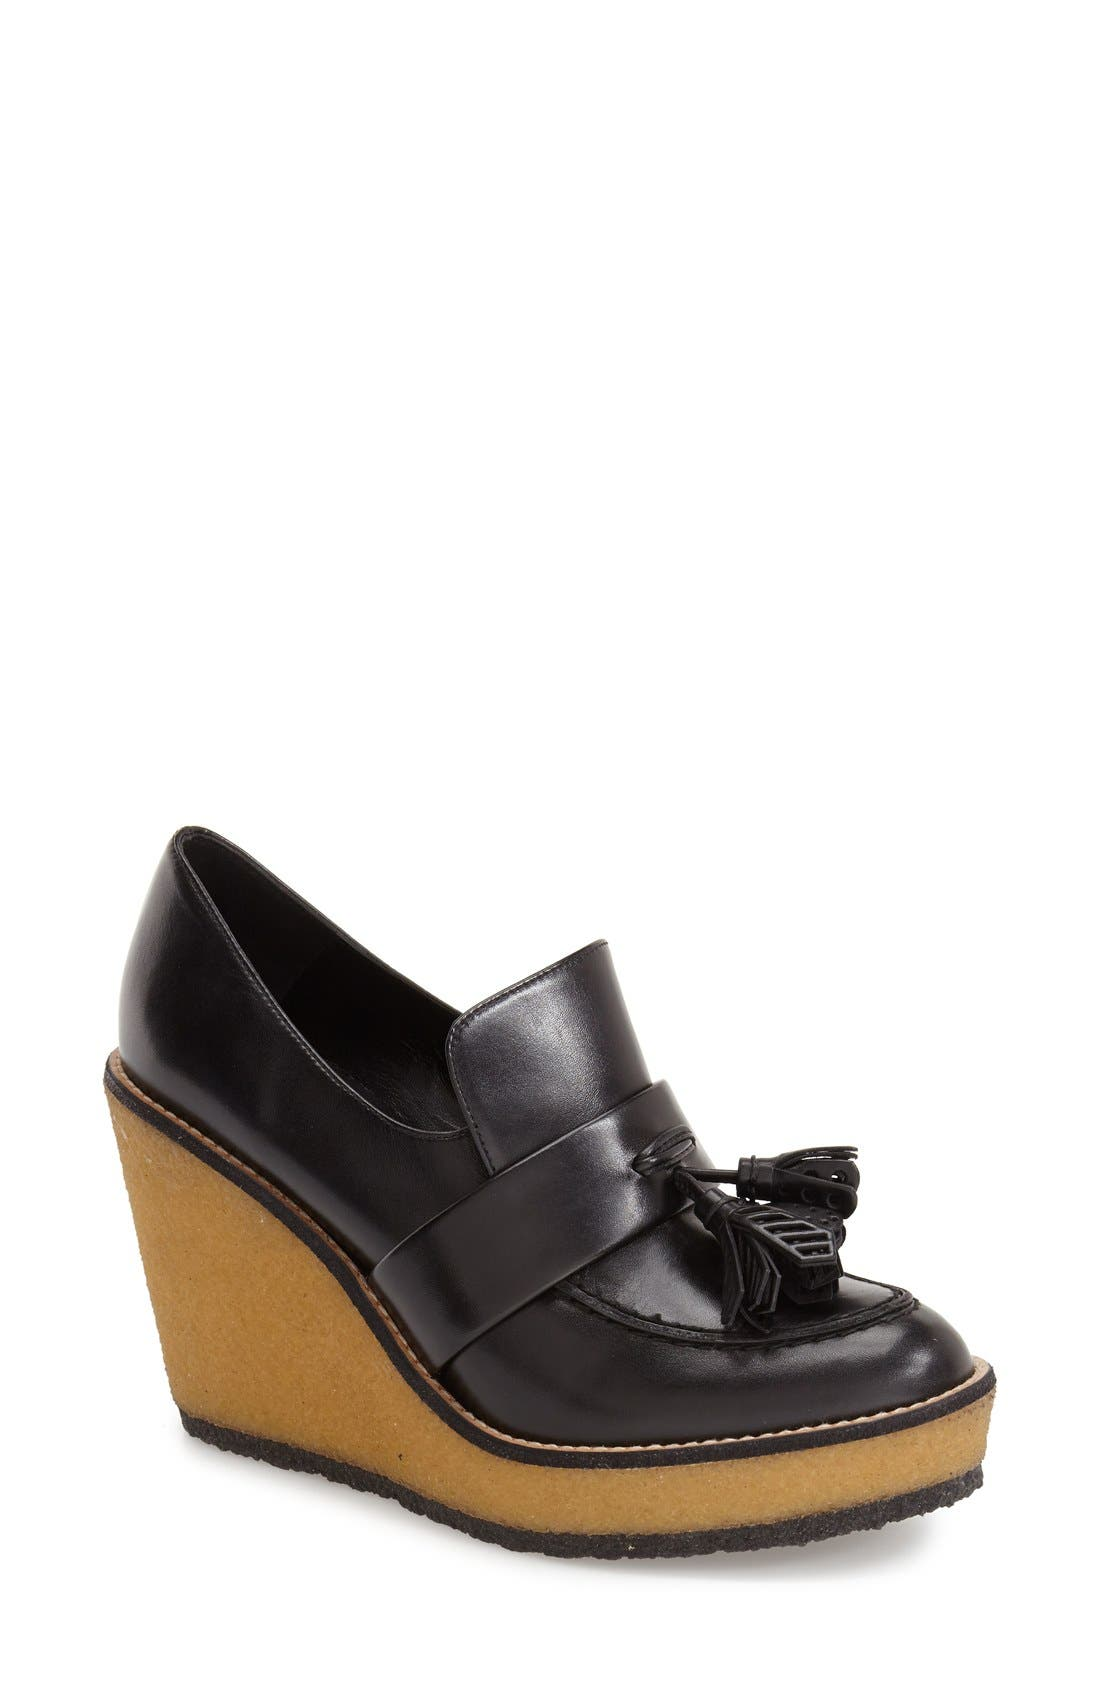 ROBERT CLERGERIE, 'Astrid' Wedge Loafer, Main thumbnail 1, color, 001